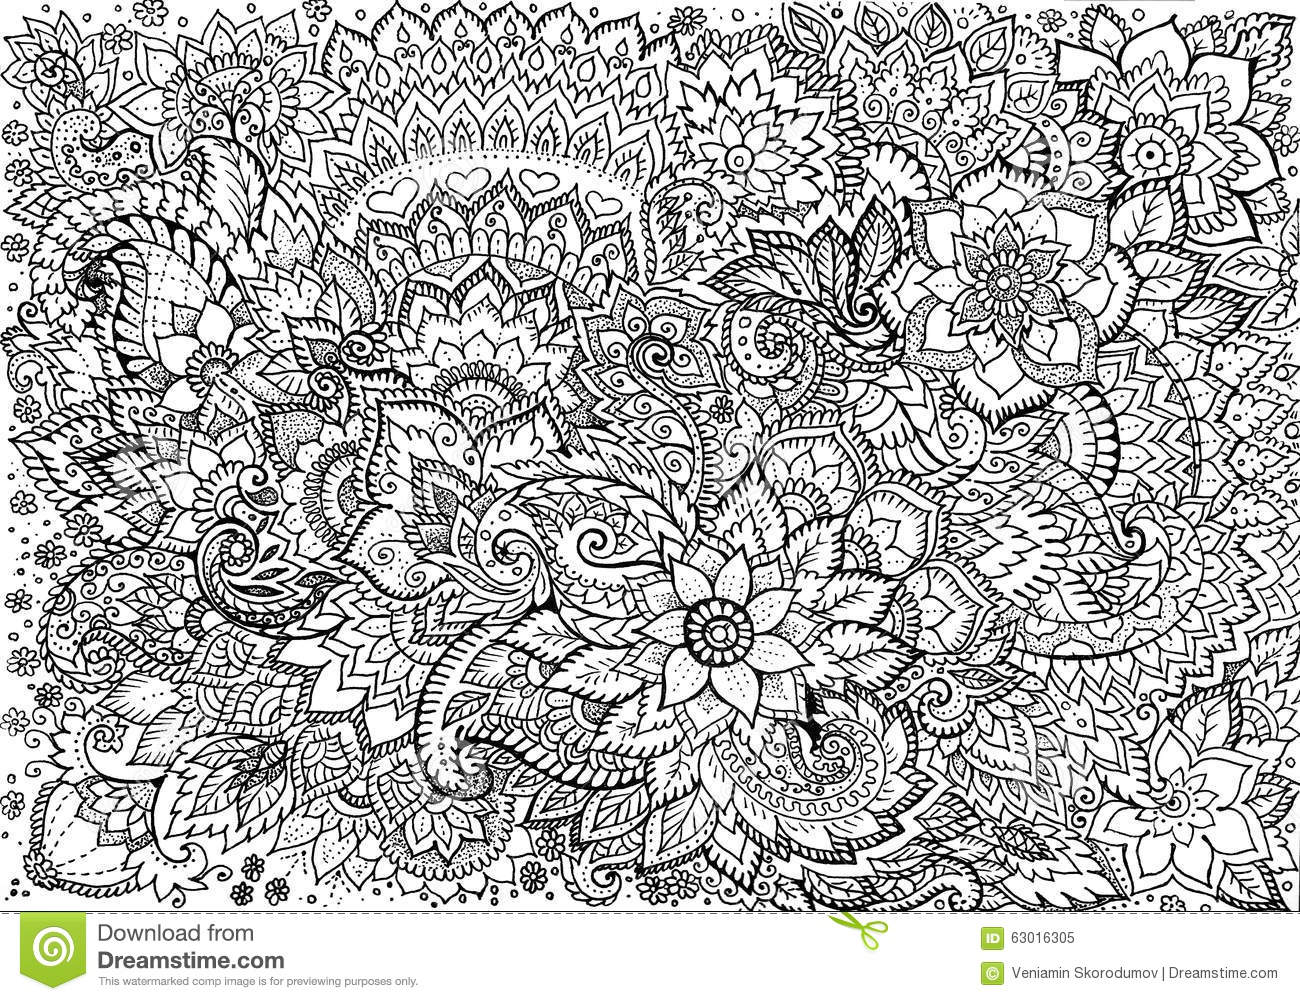 Drawing Background Floral Patterns Stock Illustration - Image 63016305